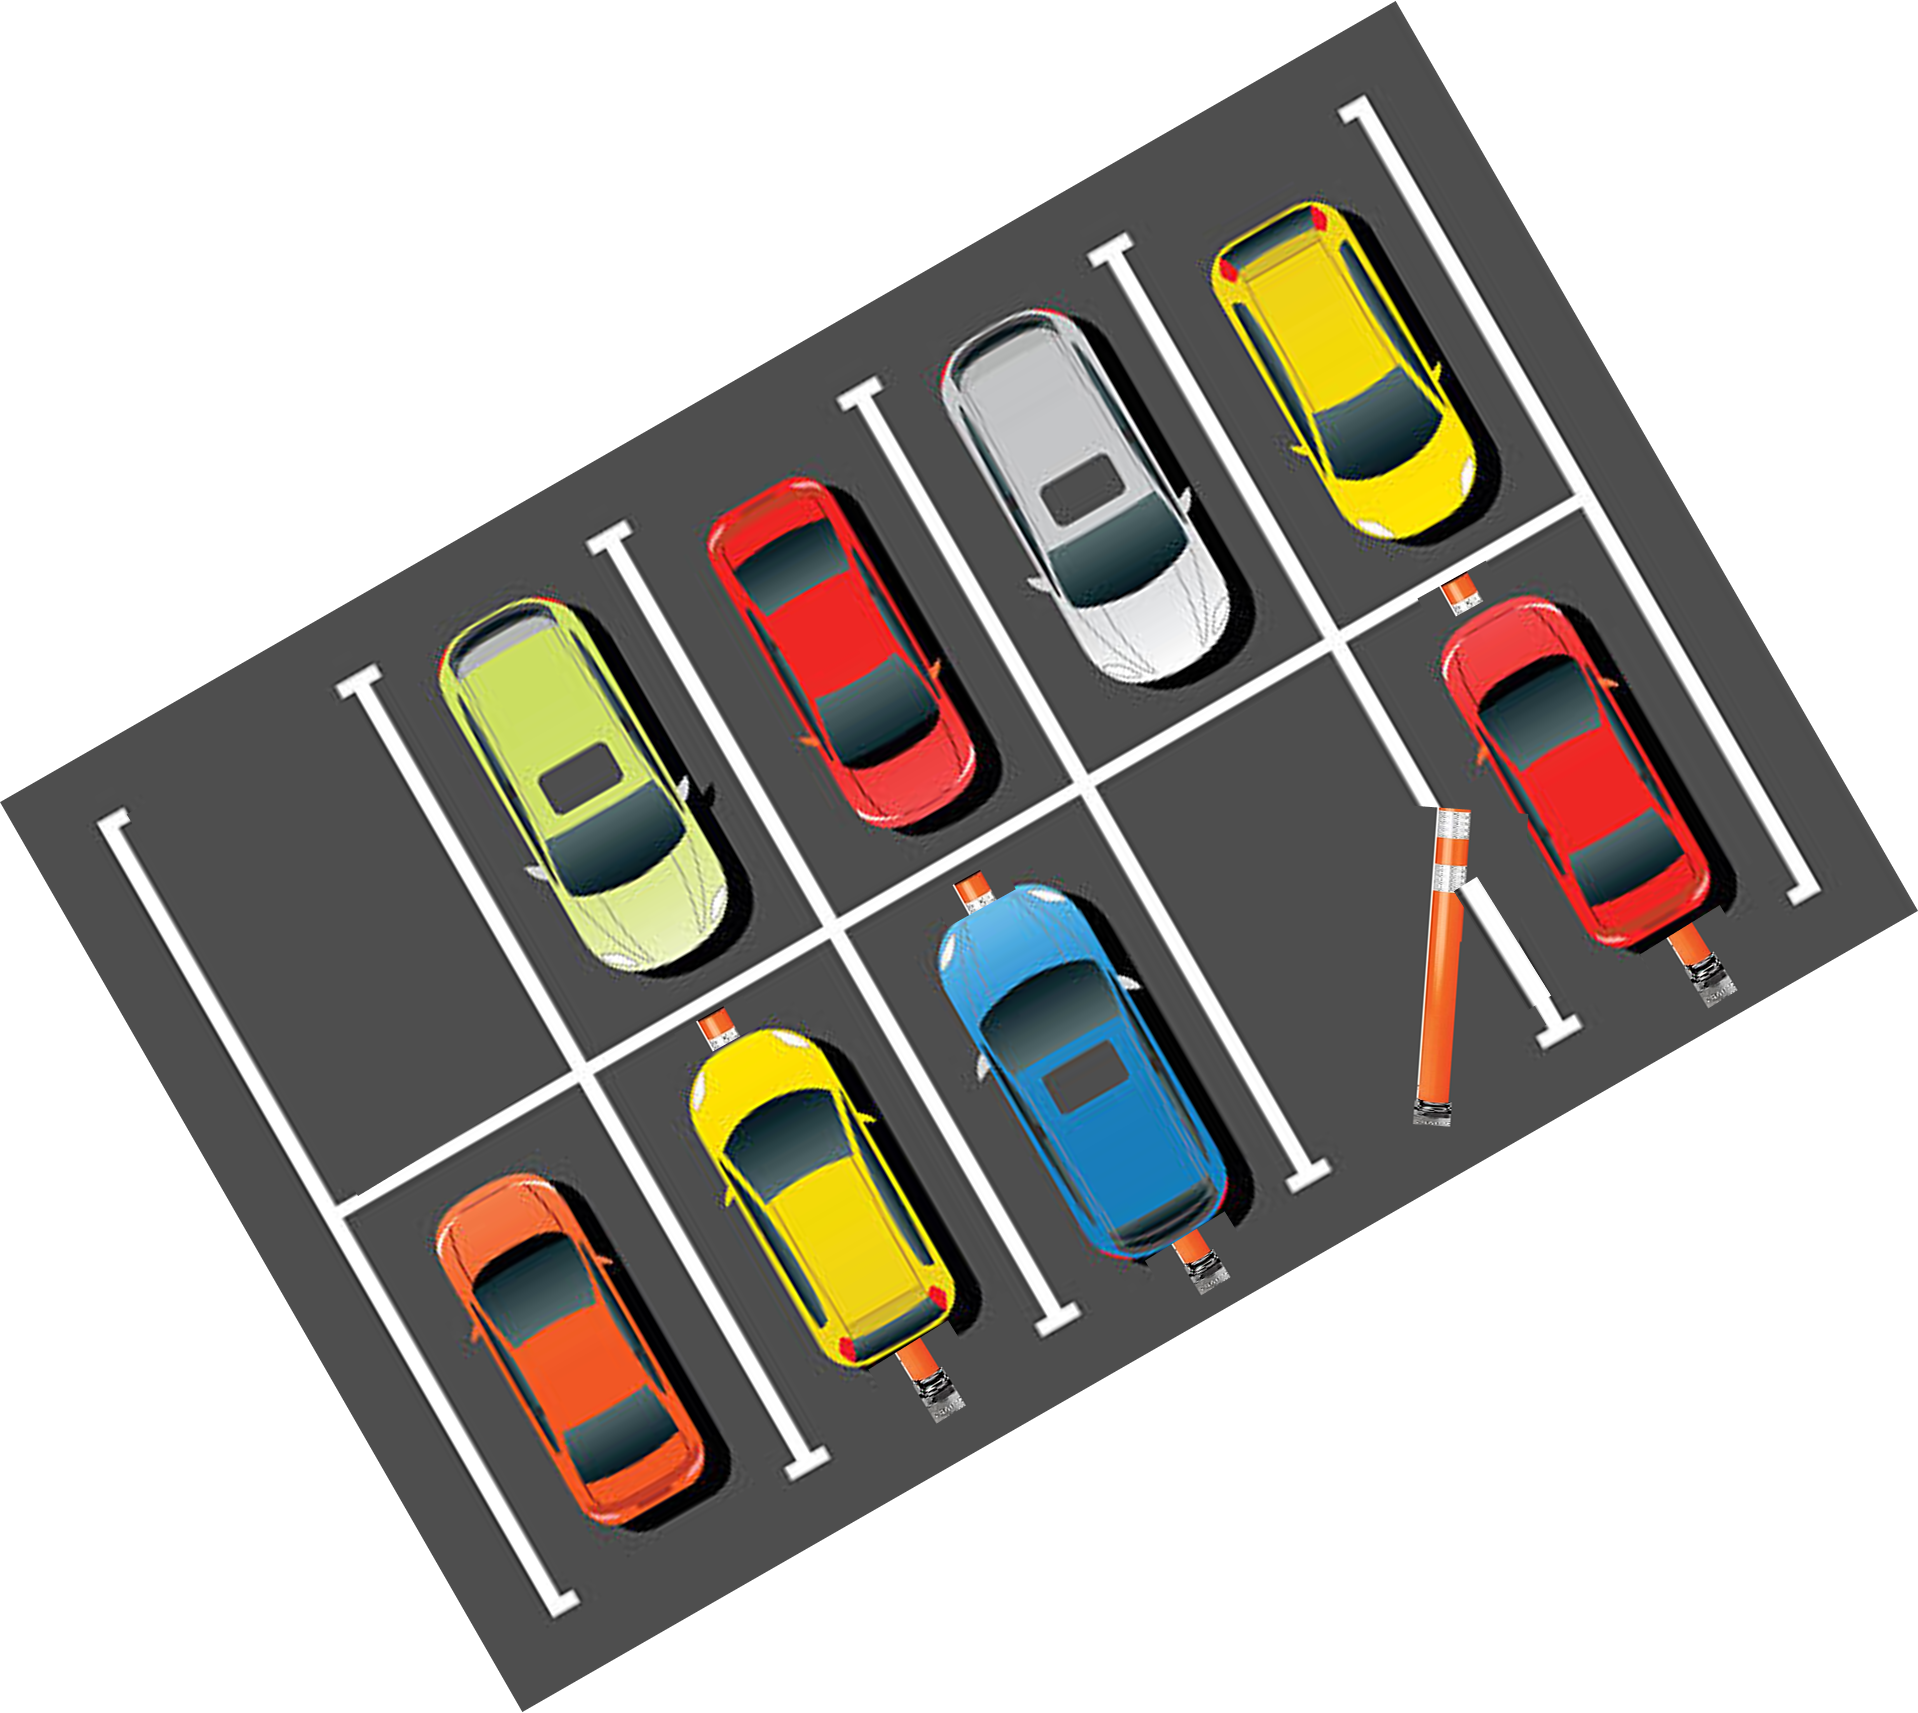 Parking lot clipart drawing. Smart made easy by